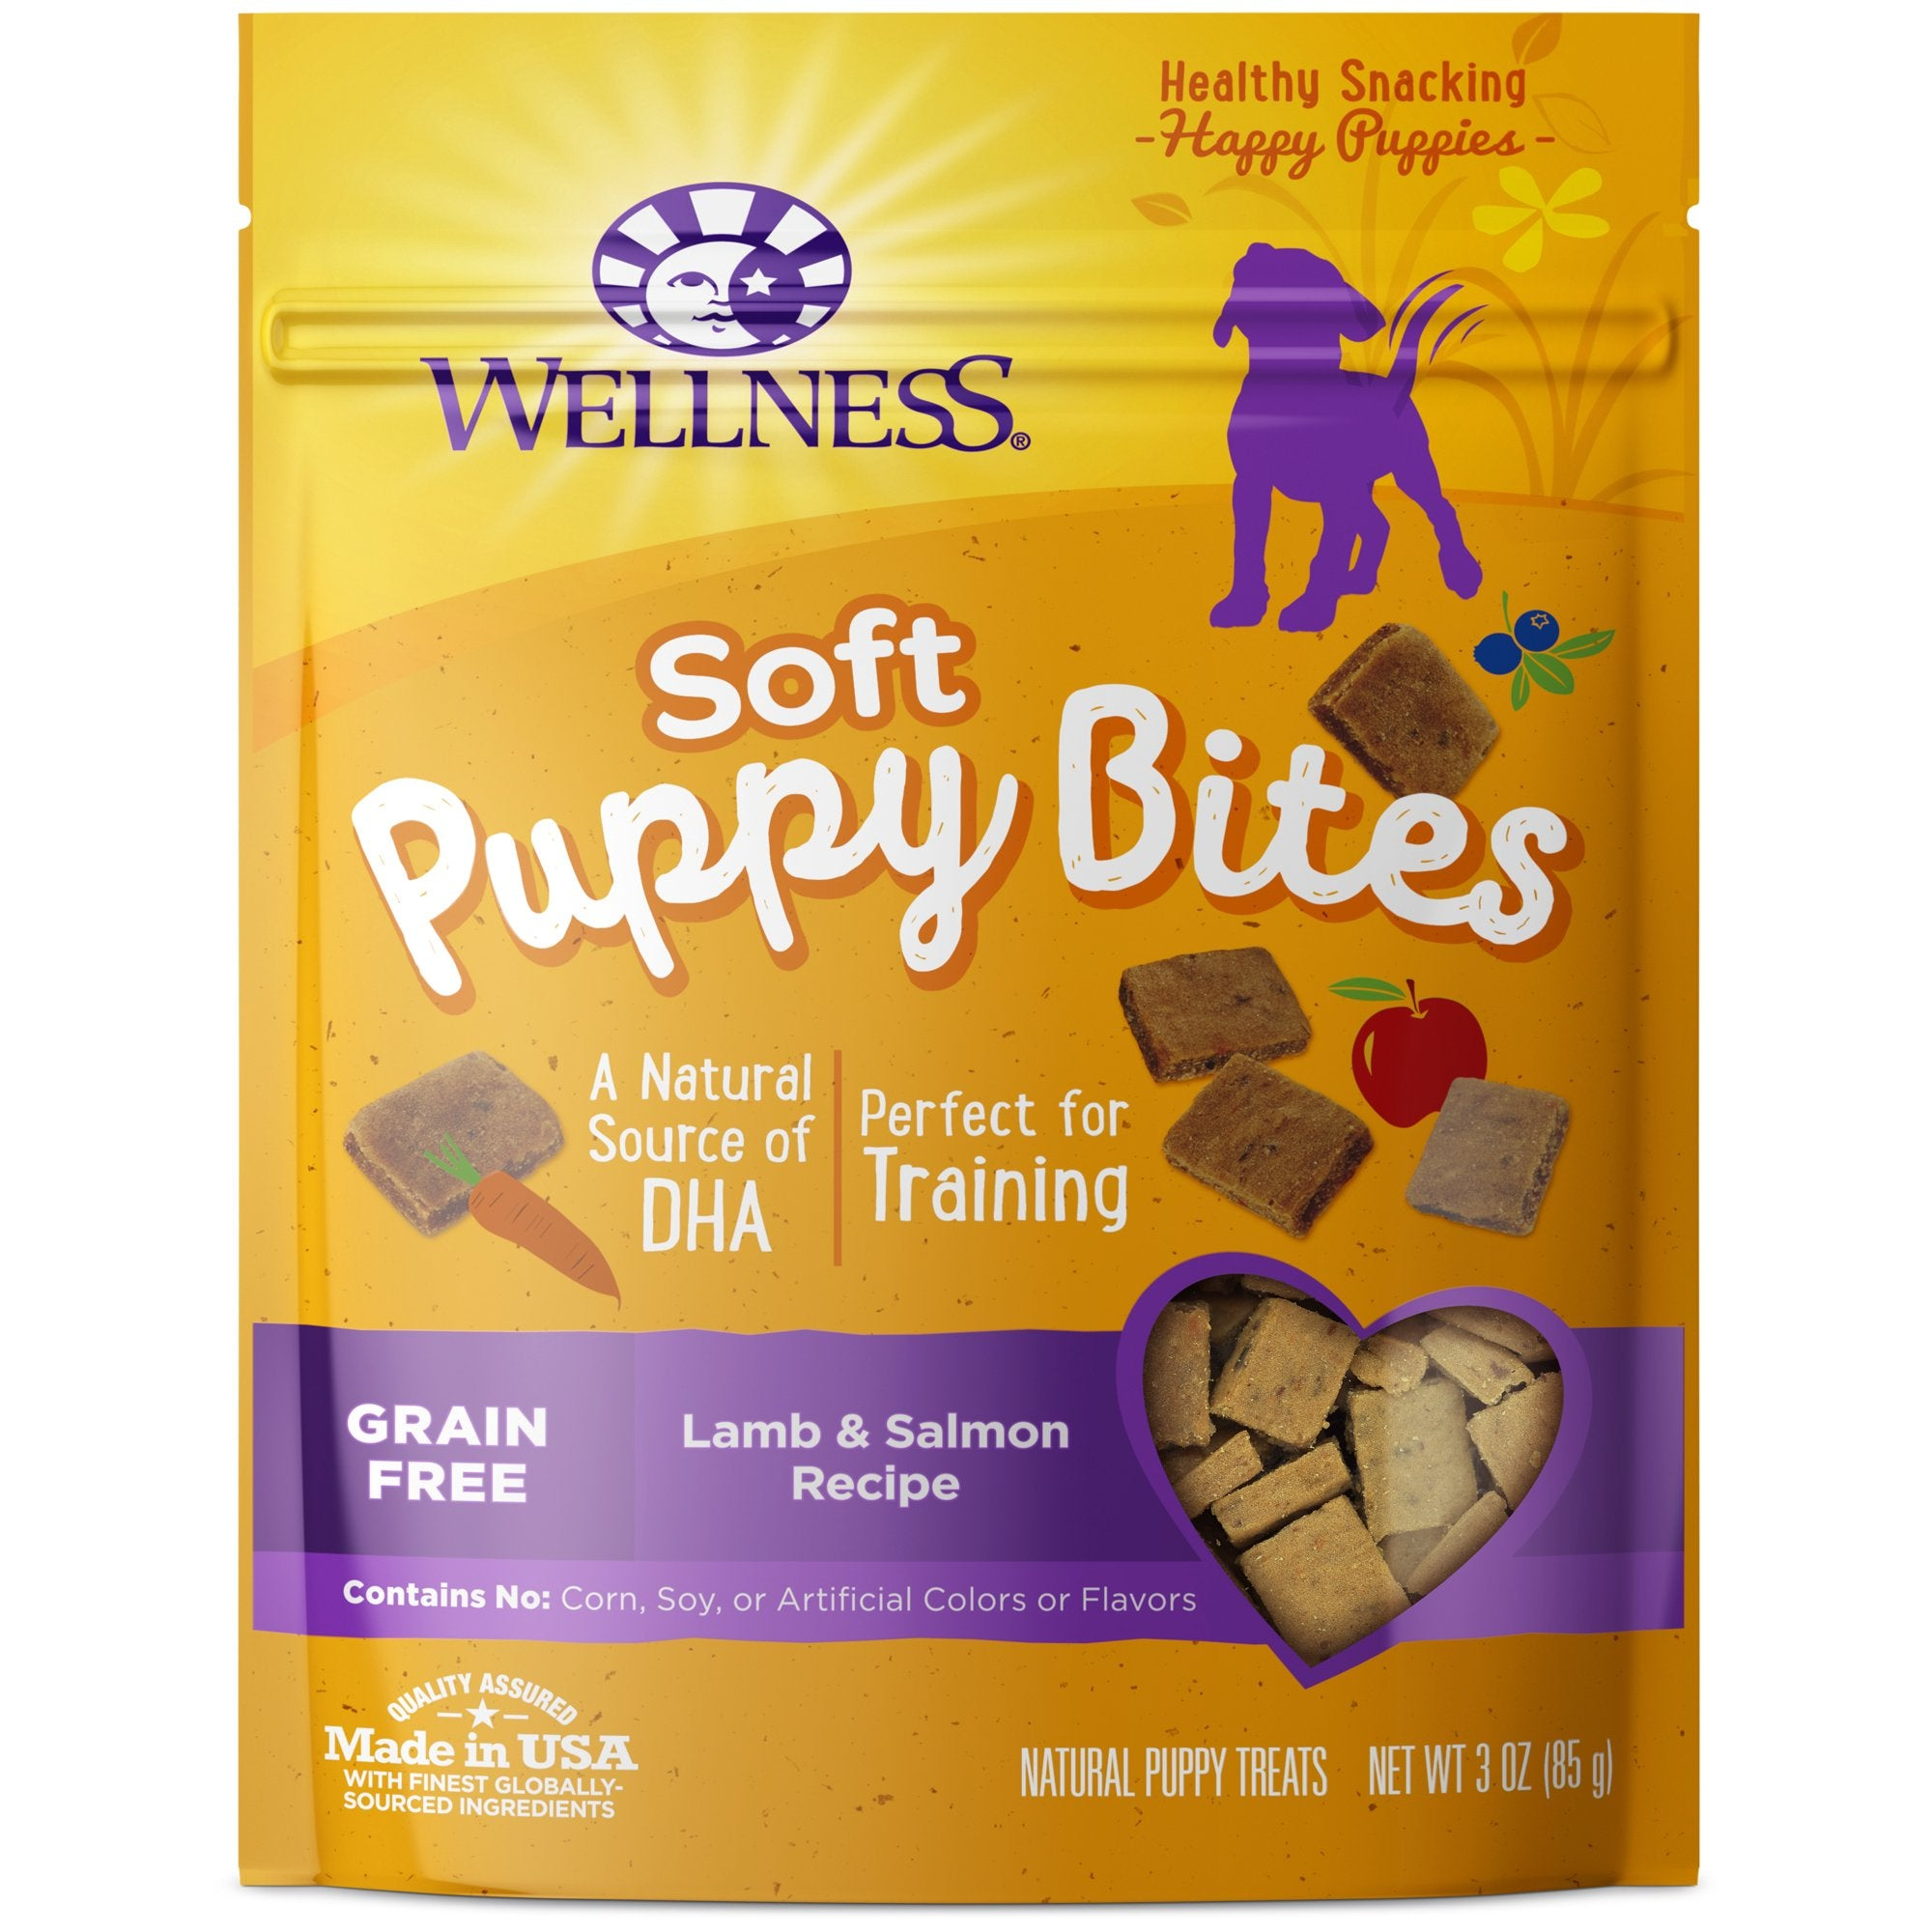 Puppy Treat - Wellness Treat - Training Treat - USA